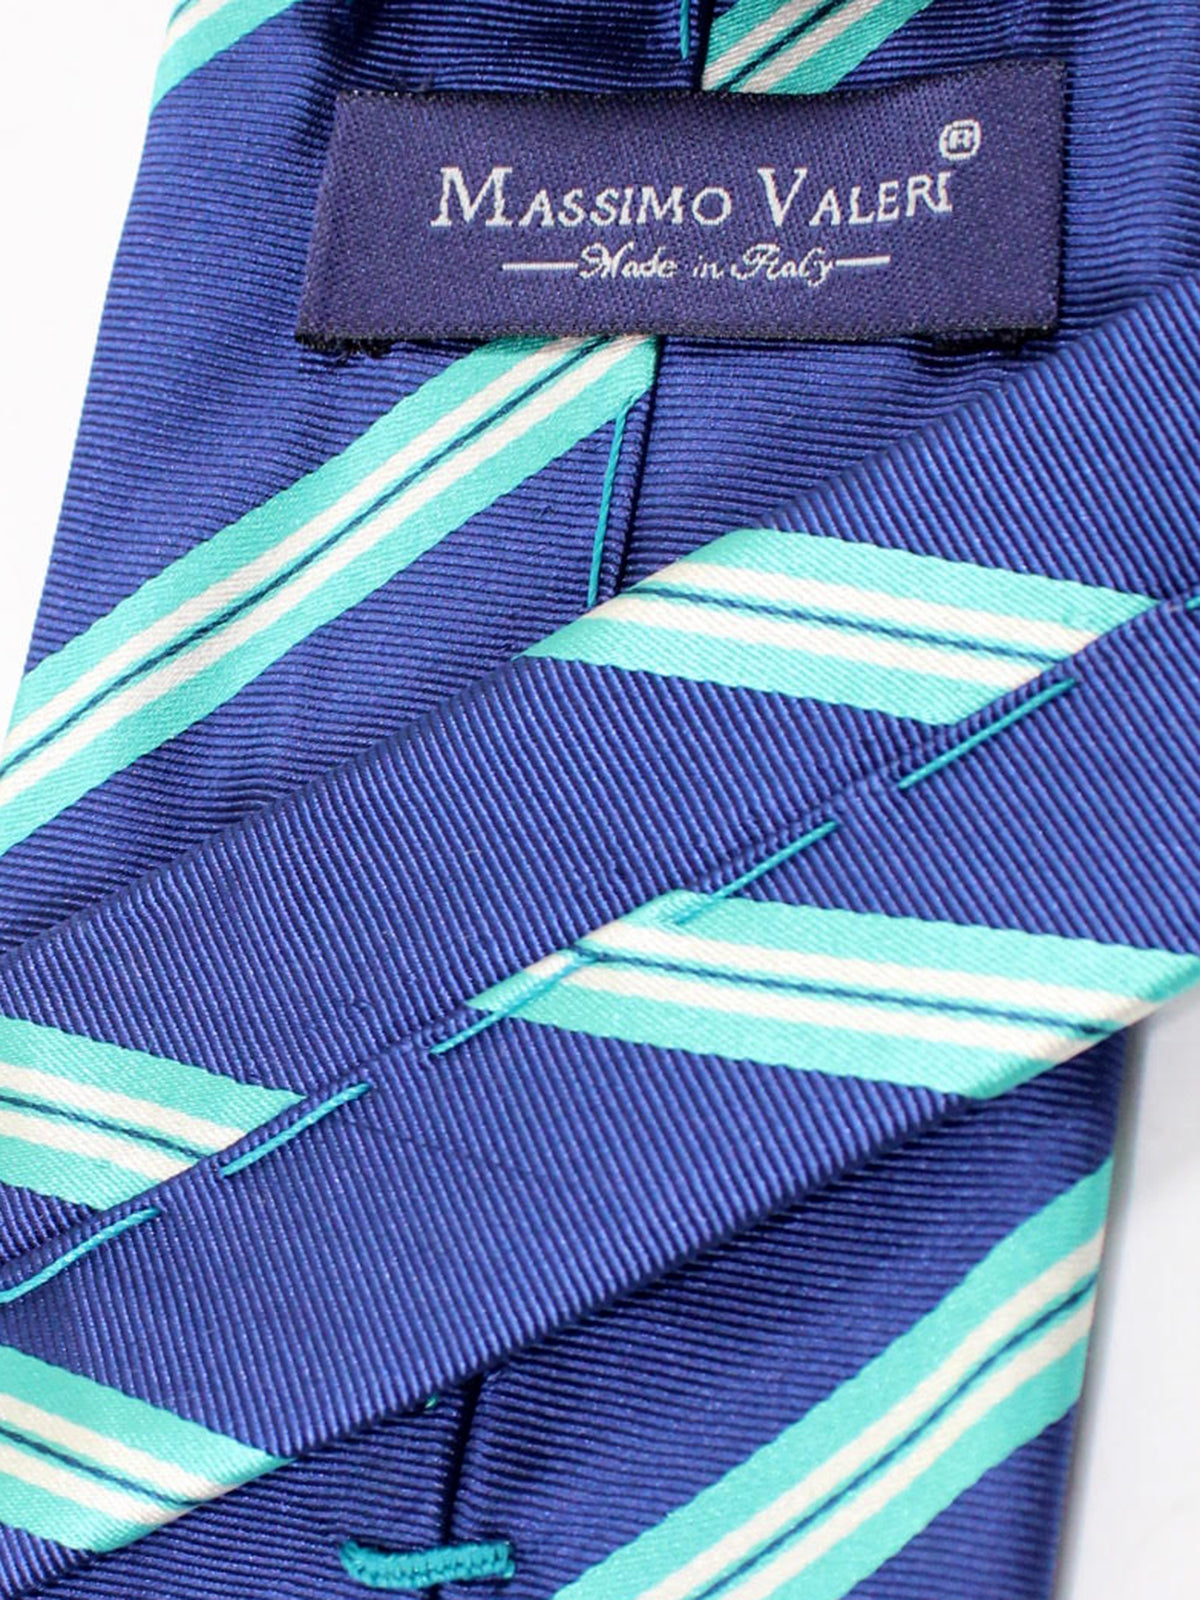 Massimo Valeri Silk Extra Long Tie Navy Aqua Stripes